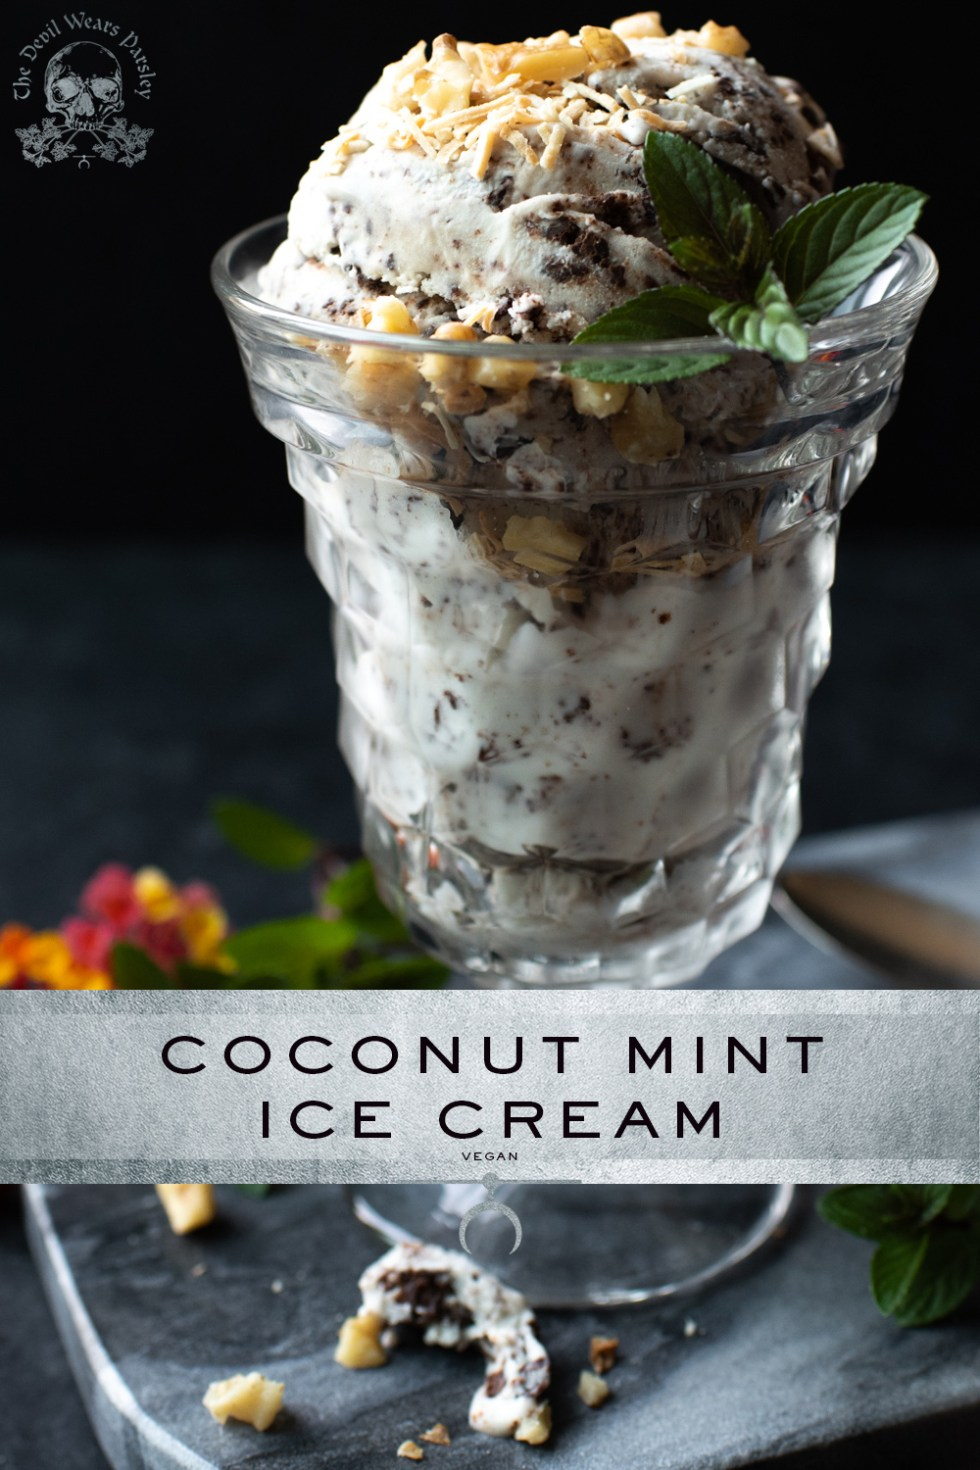 A cool, minty concoction for enhancing that big, beautiful brain of yours!